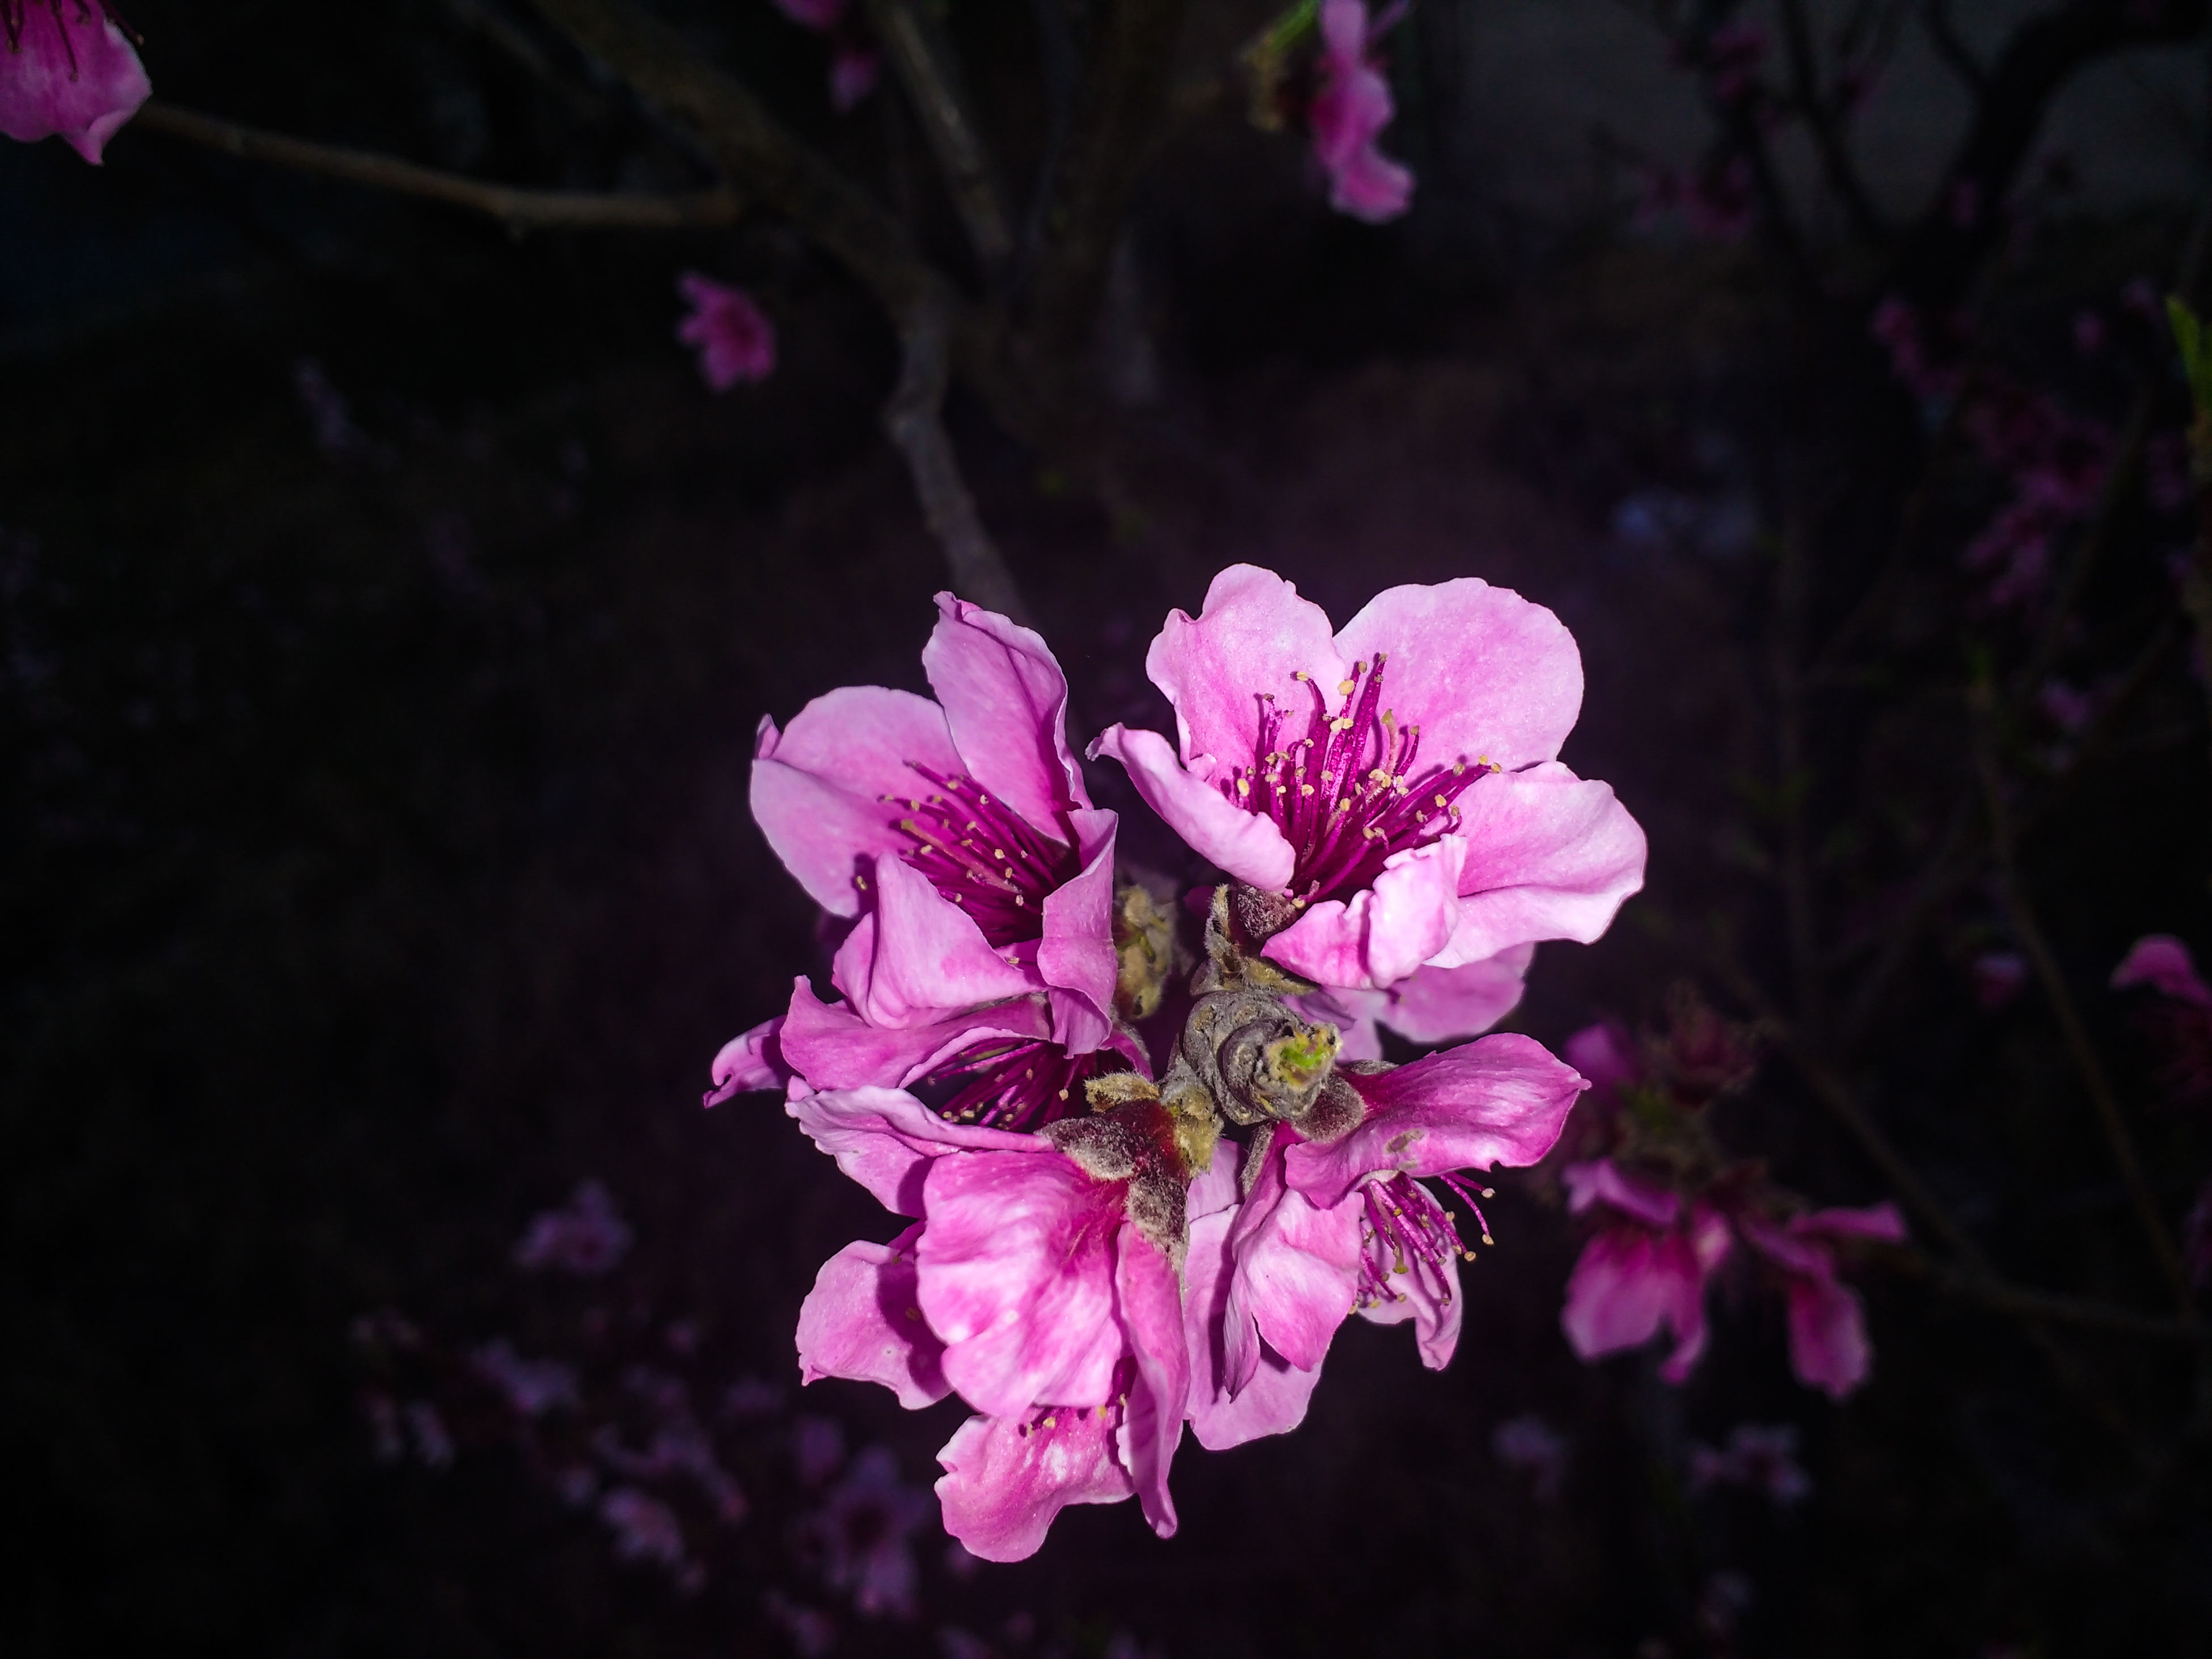 flower, fragility, freshness, growth, beauty in nature, petal, close-up, pink color, springtime, nature, in bloom, flower head, branch, blossom, botany, focus on foreground, selective focus, day, bunch of flowers, bloom, vibrant color, softness, cherry blossom, no people, growing, scenics